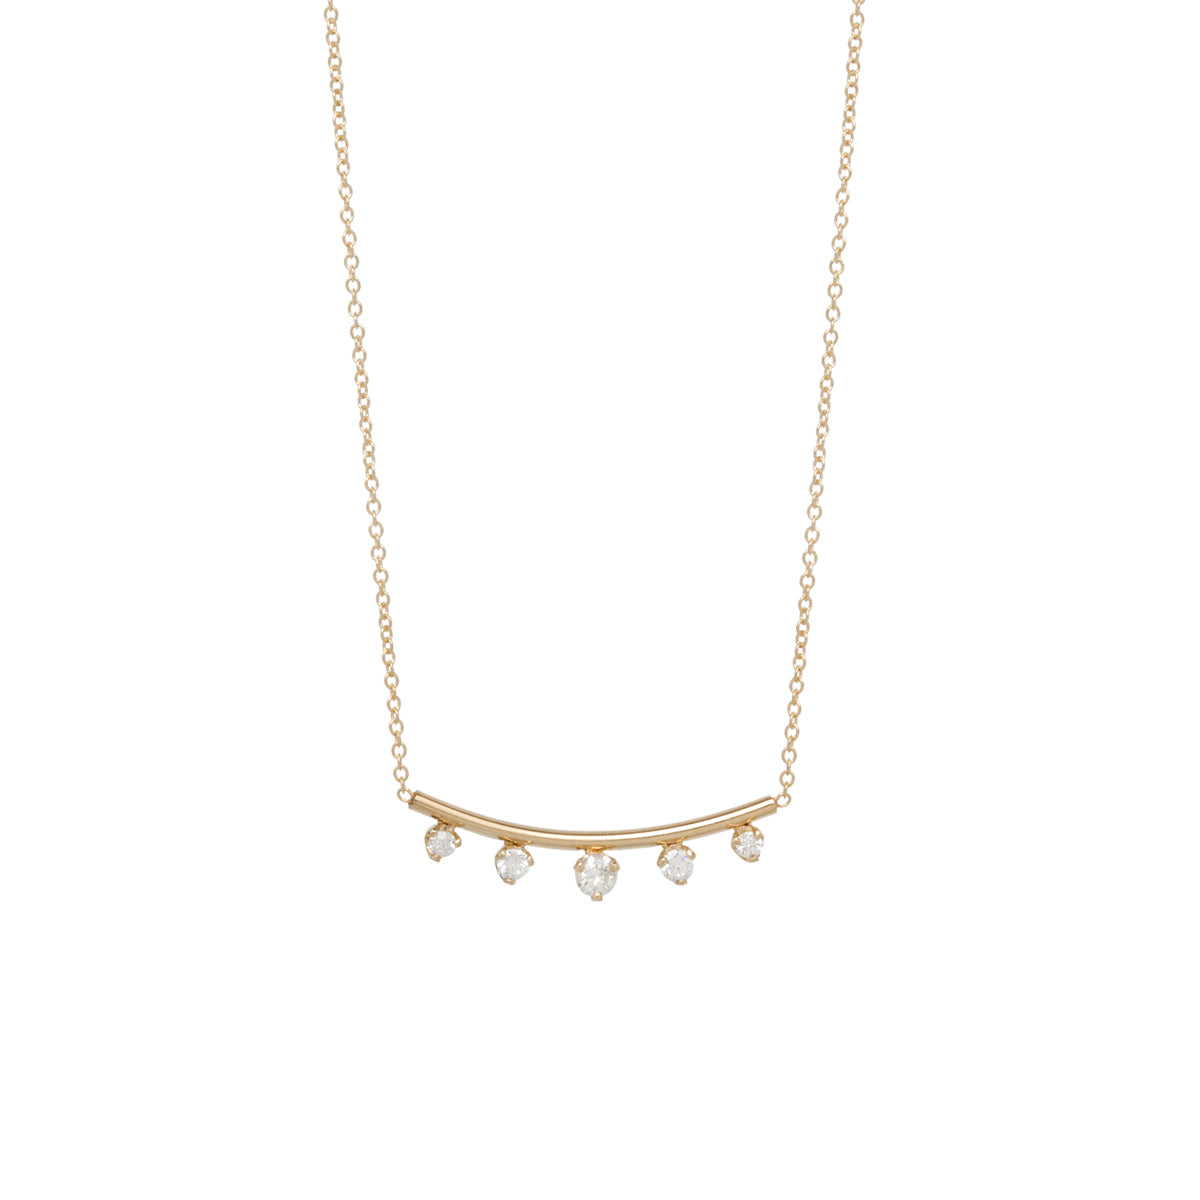 14k 5 prong diamond curved bar necklace